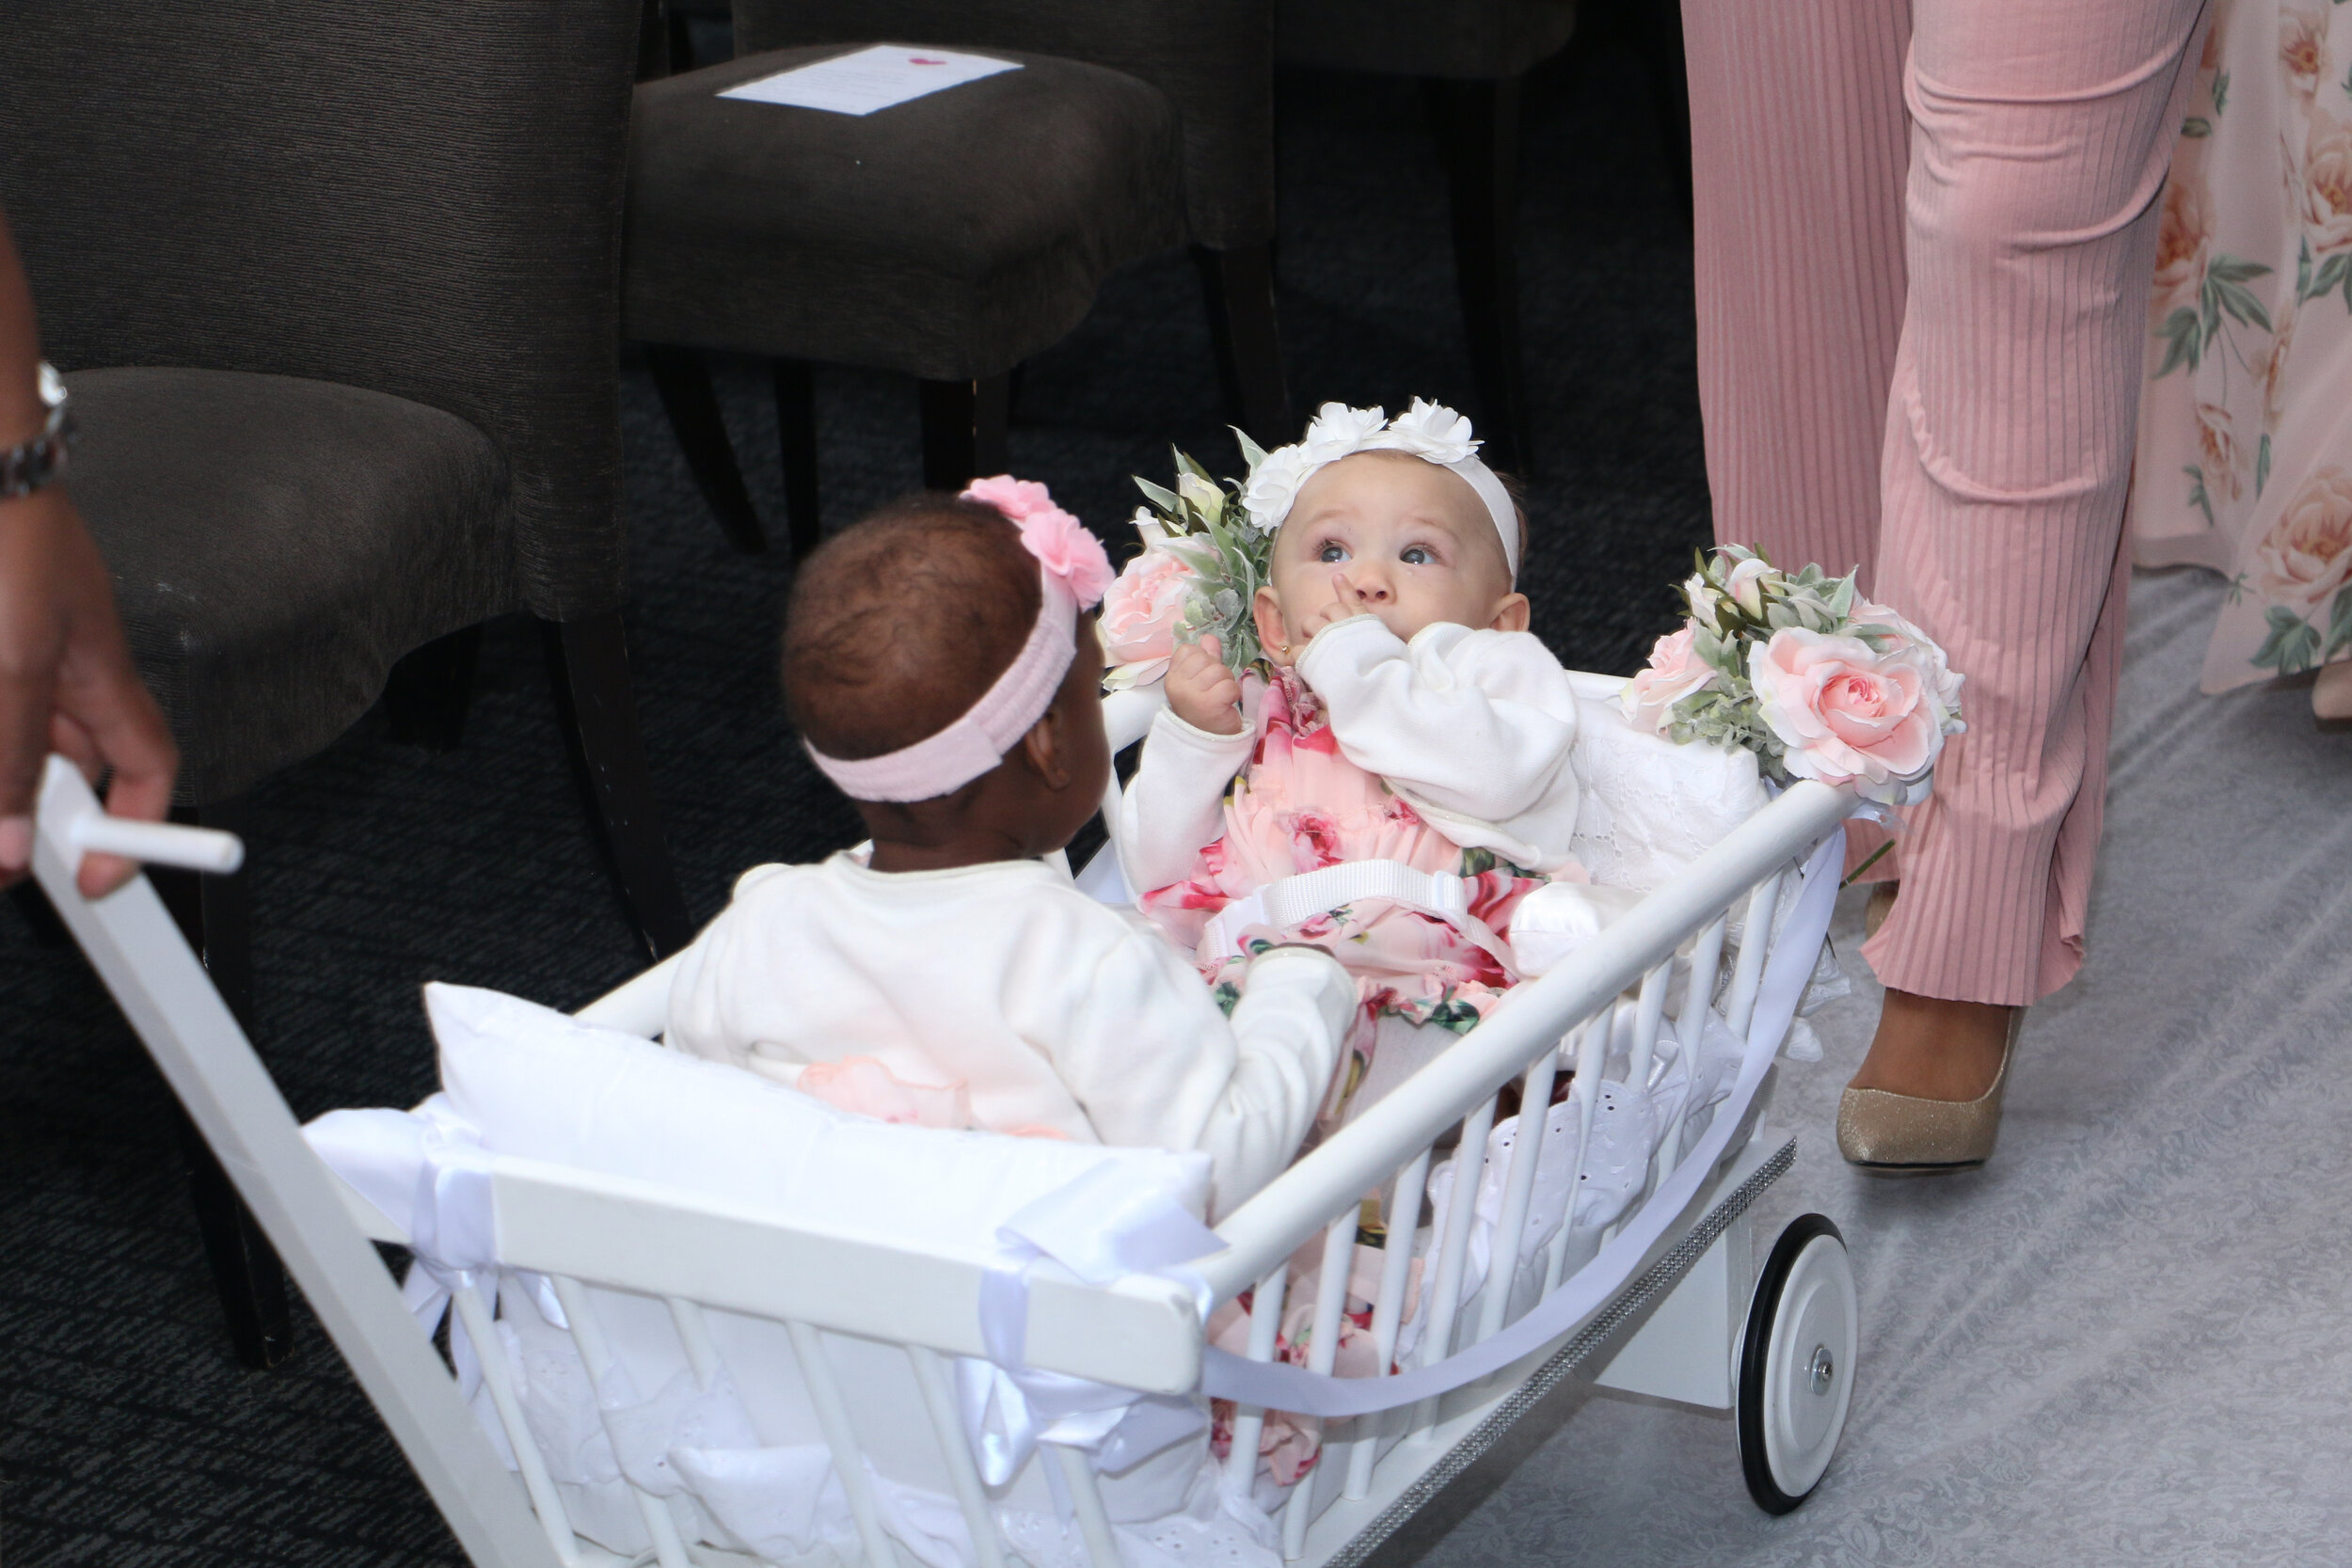 Double Baby - £175 - The same customisations as a Single Baby Wedding Carriage but with the added seating support to accommodate another baby or toddler!Click here to see our full customisation option for Flowers, Ribbon and Sign. And you can always contact us to see if we can match a specific colour for the flowers and ribbon.We also offer the option of having a customised sign made which you can then keep - costing just £20!Book your Double Baby Wedding Carriage!